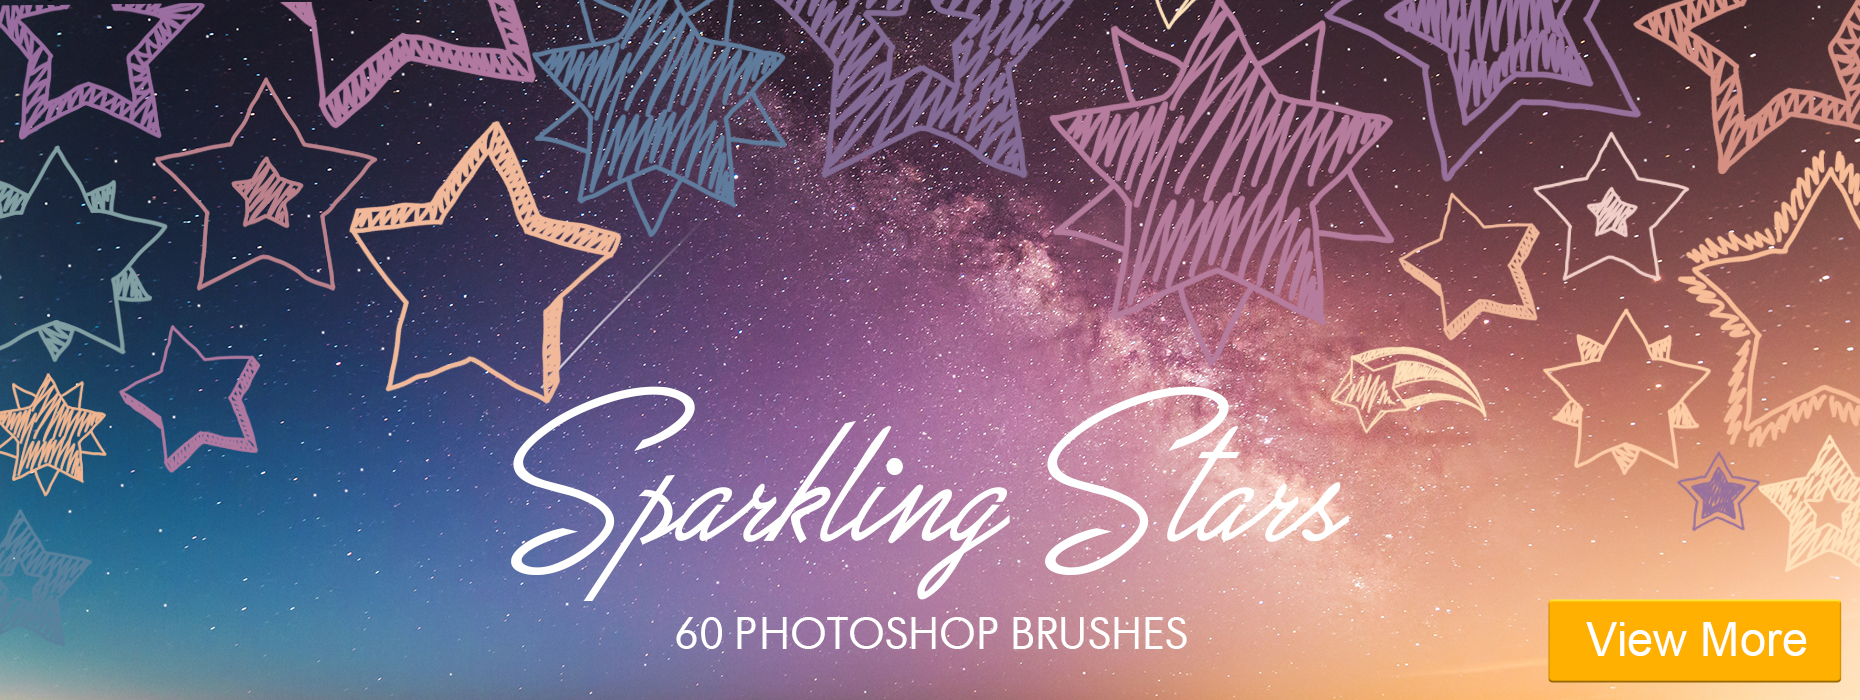 free photoshop circle brushes sparkling stars 60 photoshop brushes banner